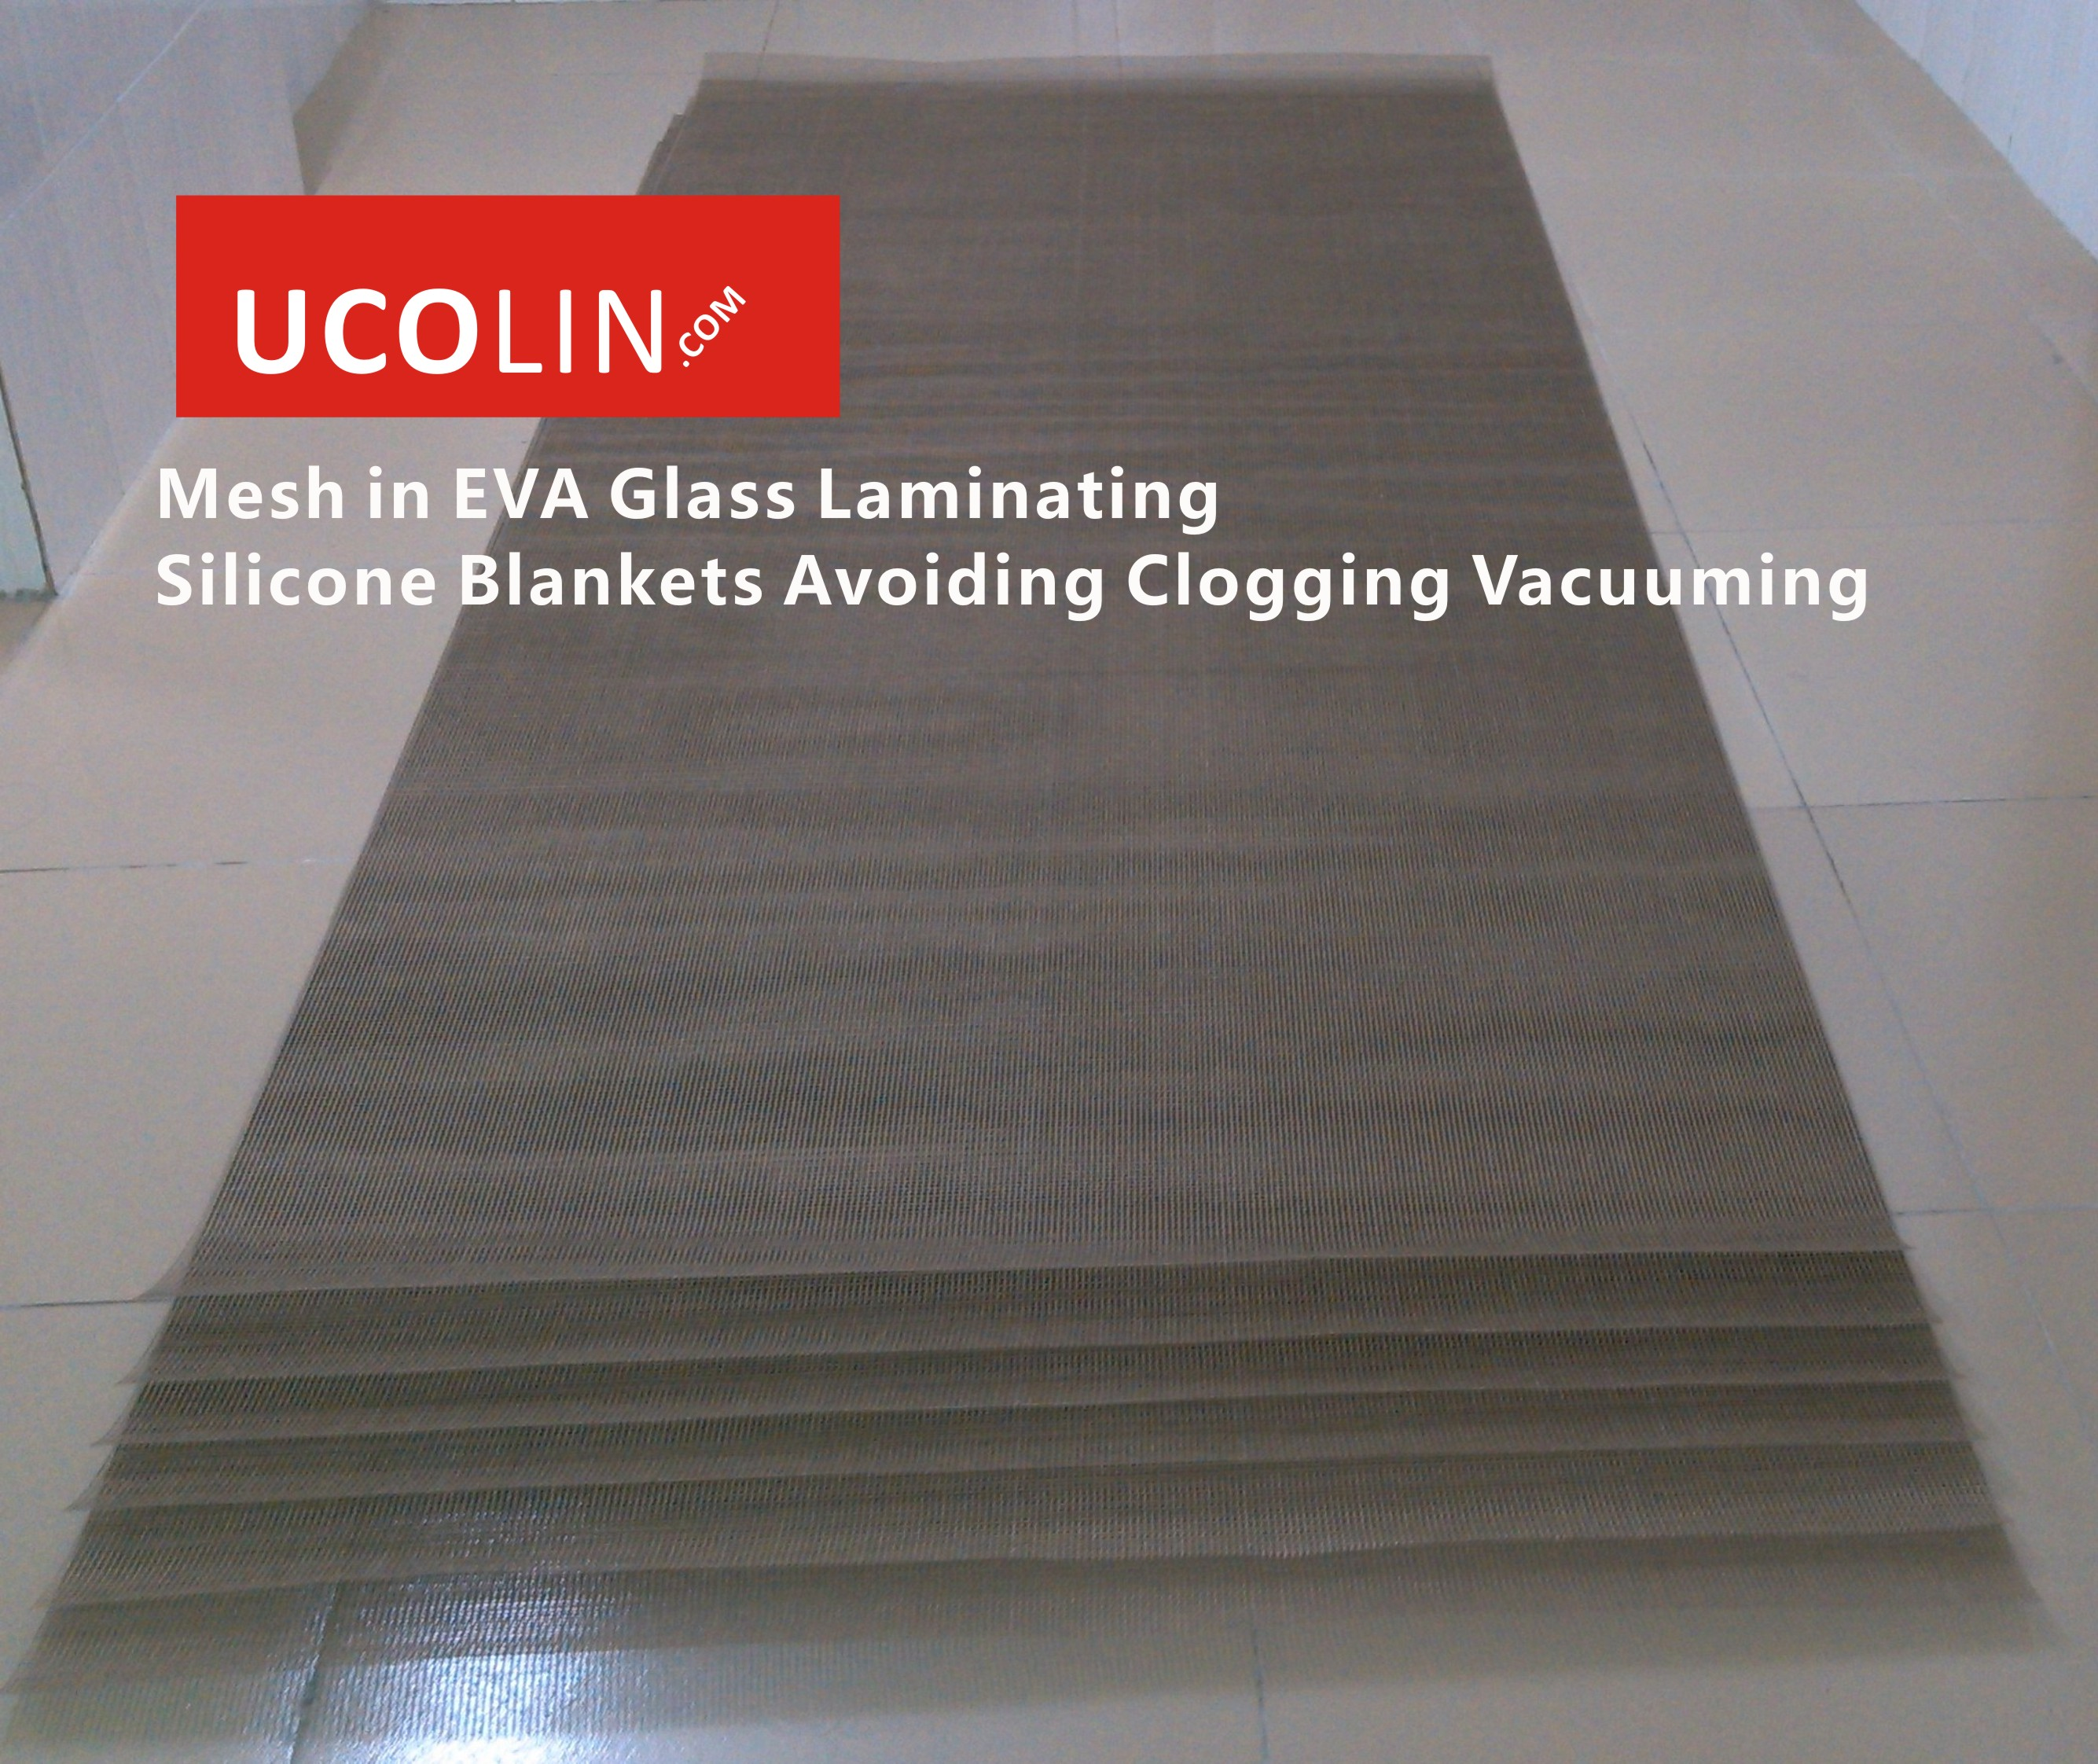 03 Mesh  in Glass Laminating Silicone Blankets Helping Vacuuming